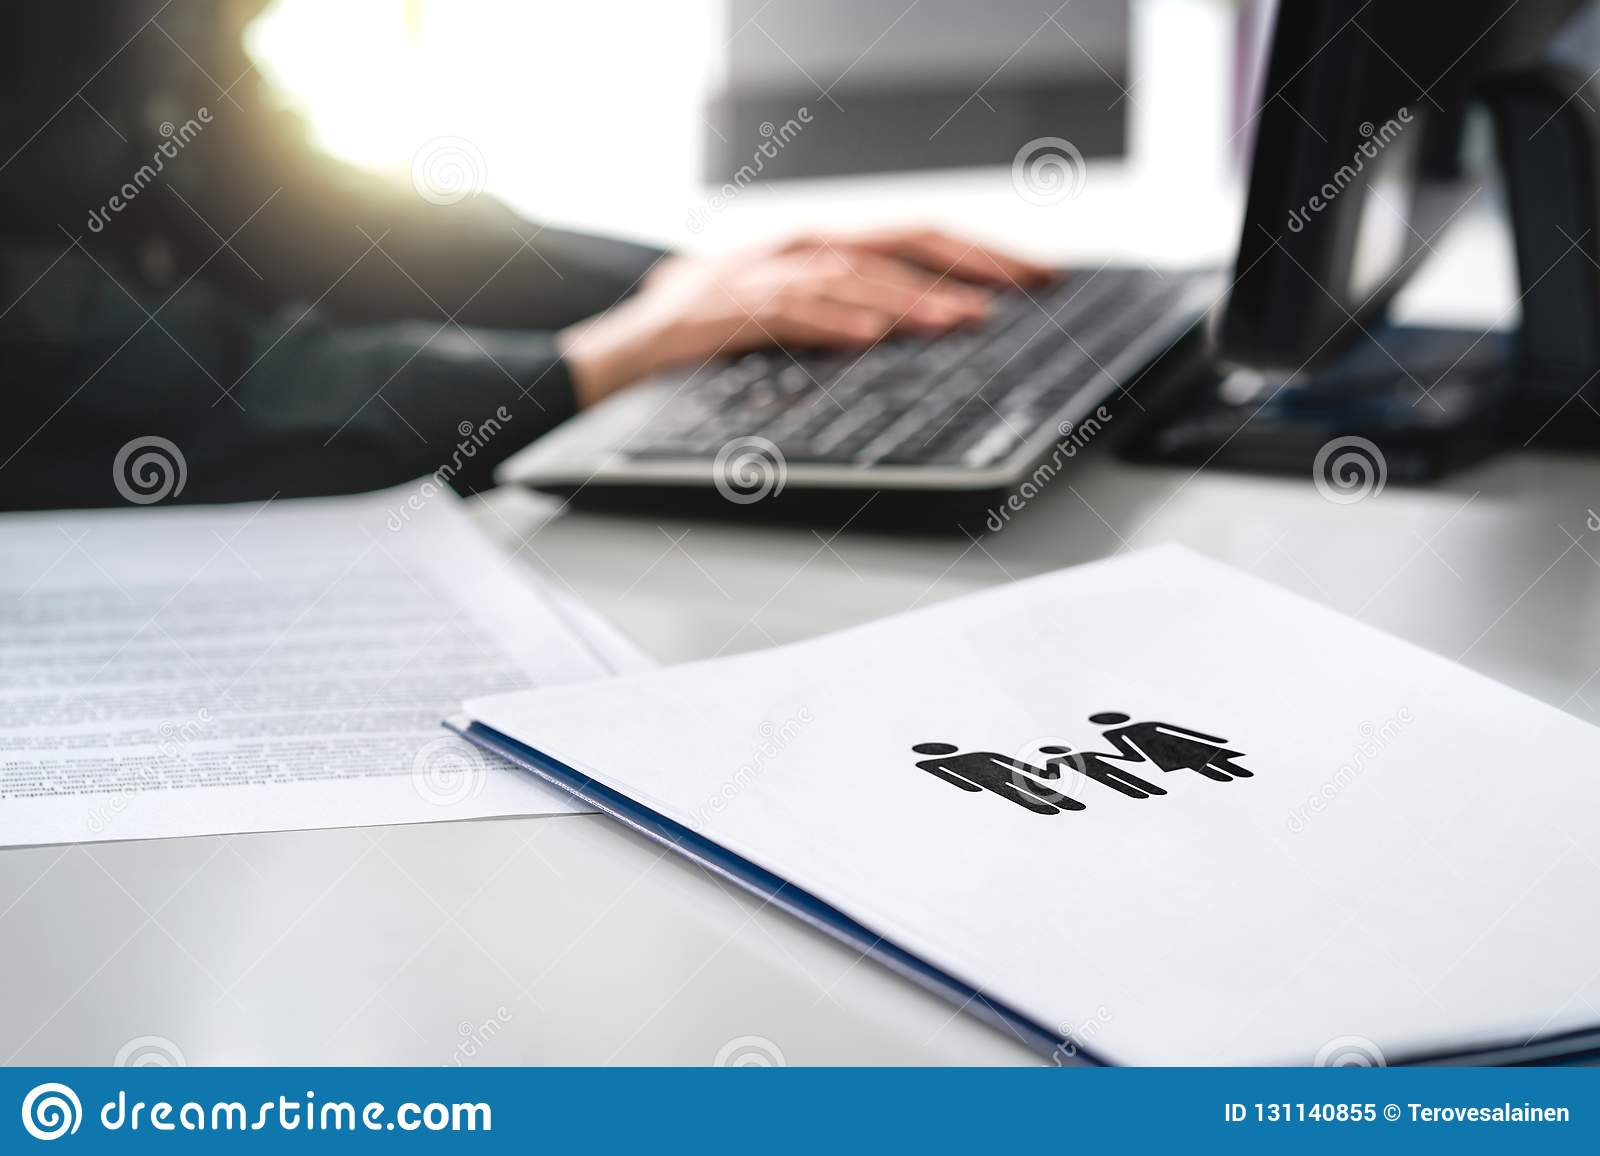 Family future, health care or finance planning concept. Woman writing insurance or mortgage application with computer.